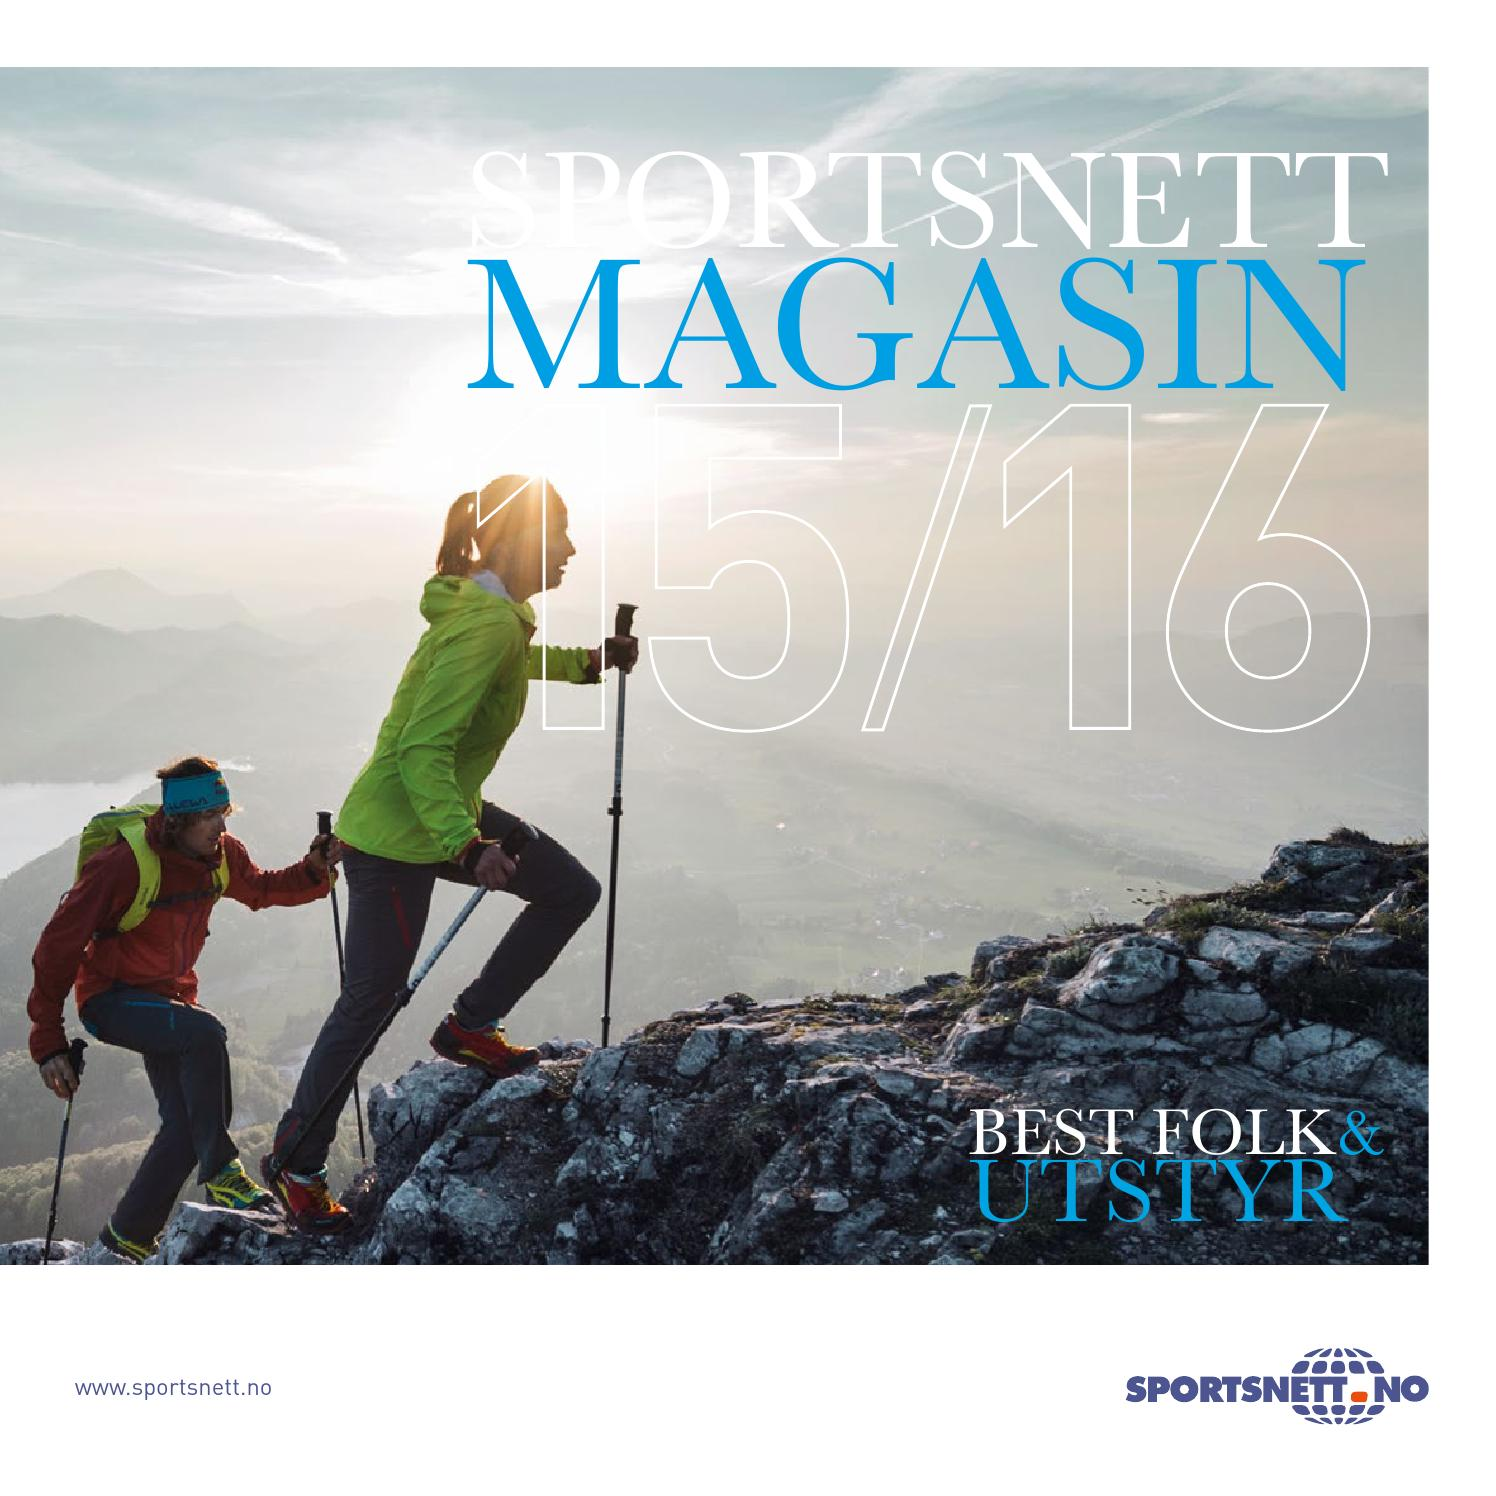 449ffd1a Sportsnettmagasinet 15/16 by Anton Sport - issuu